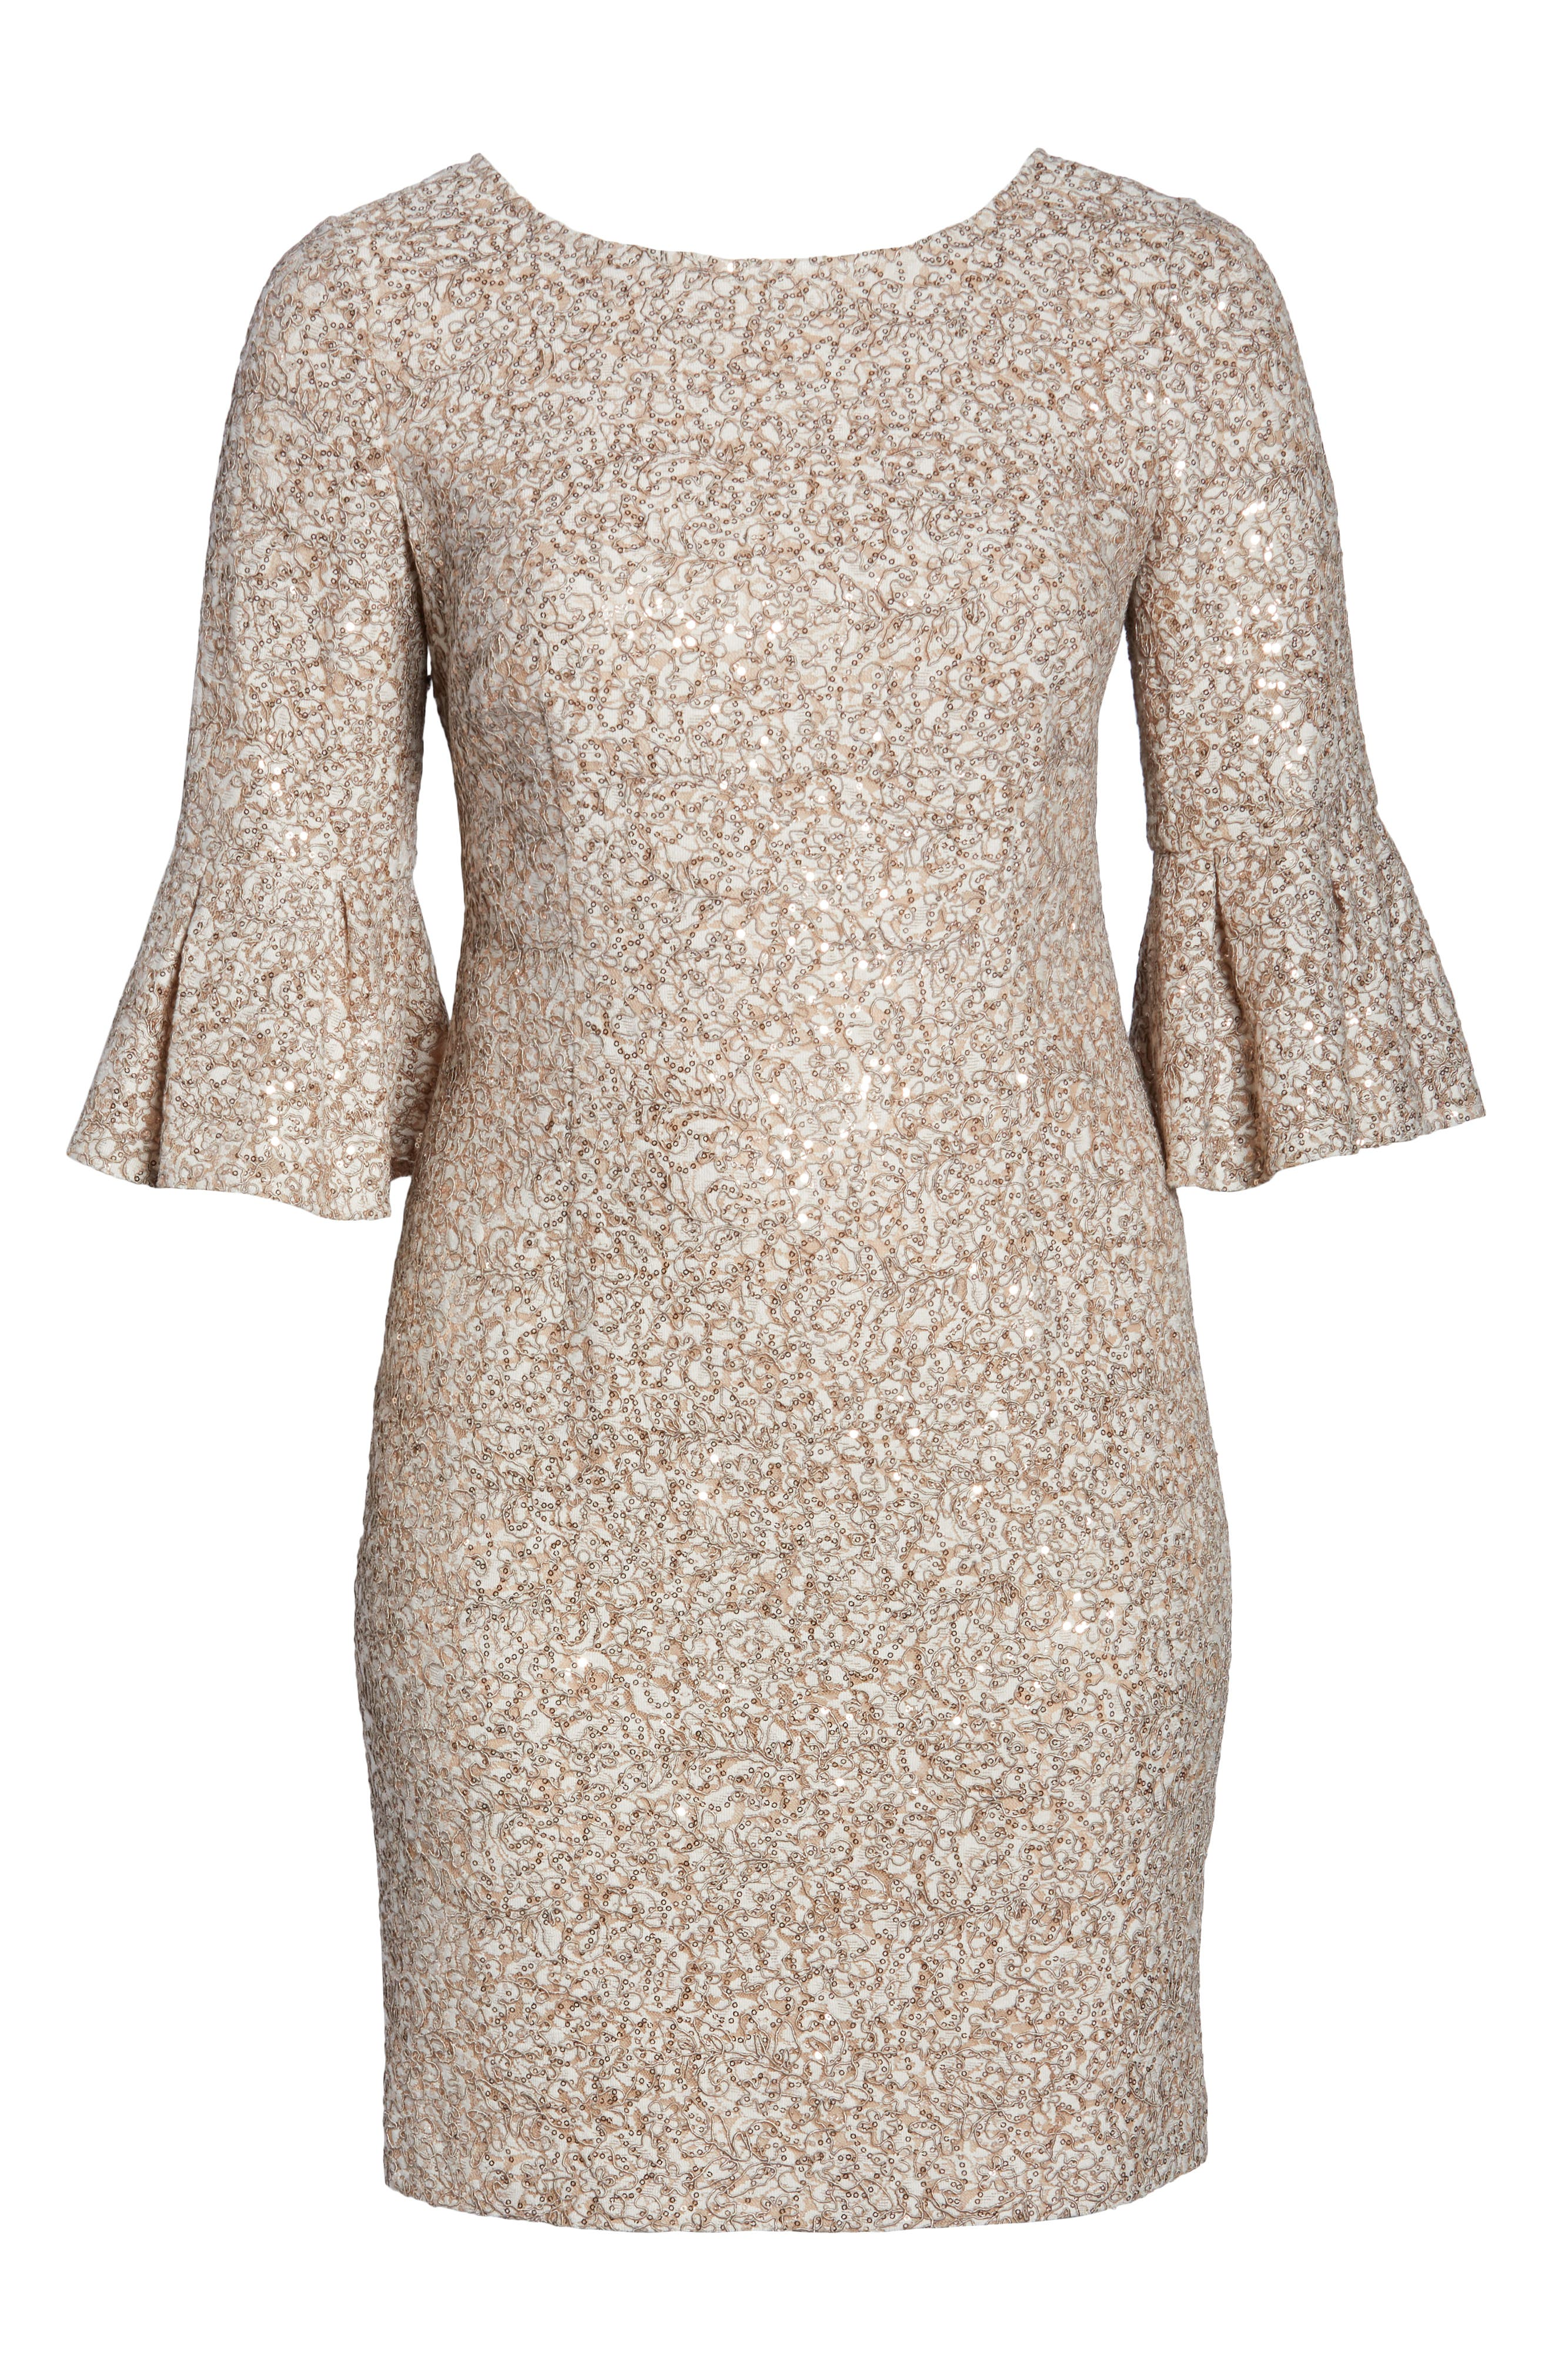 Embroidered Lace Shift Dress,                             Alternate thumbnail 7, color,                             CHAMPAGNE/ IVORY